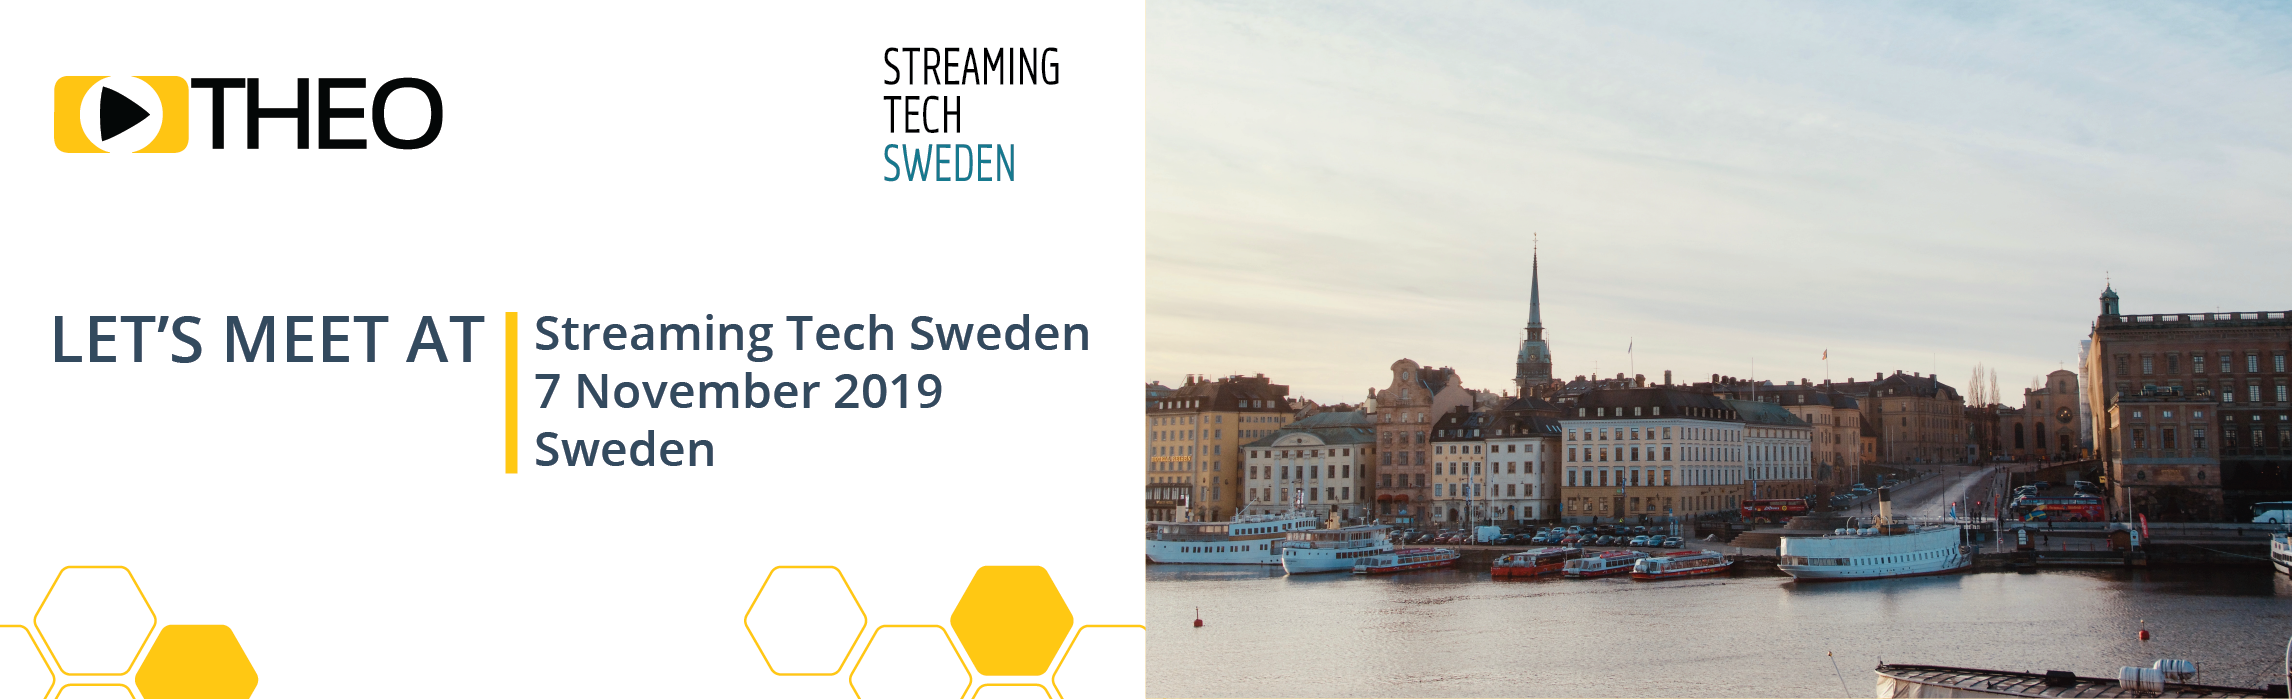 THEO Technologies is attending Streaming Tech - Sweden